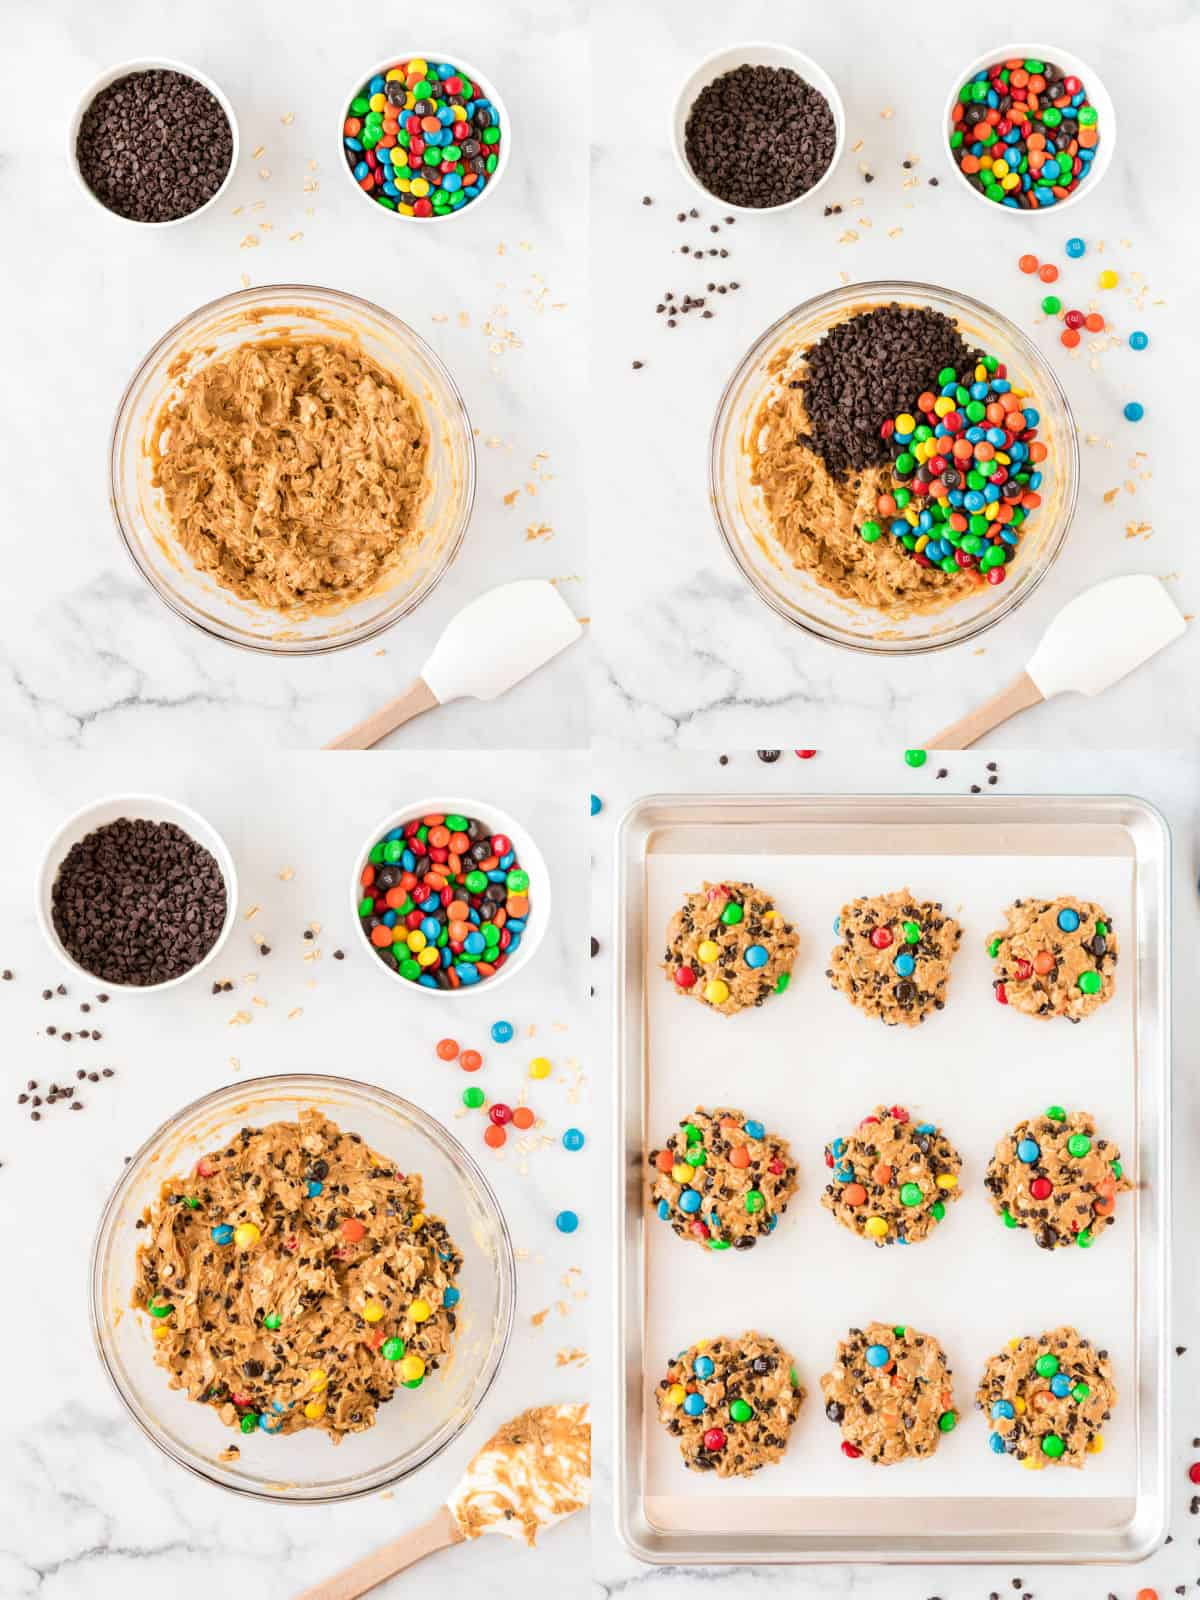 collage image showing the m&m's and chocolate chips being added, then the cookies formed on the baking sheet